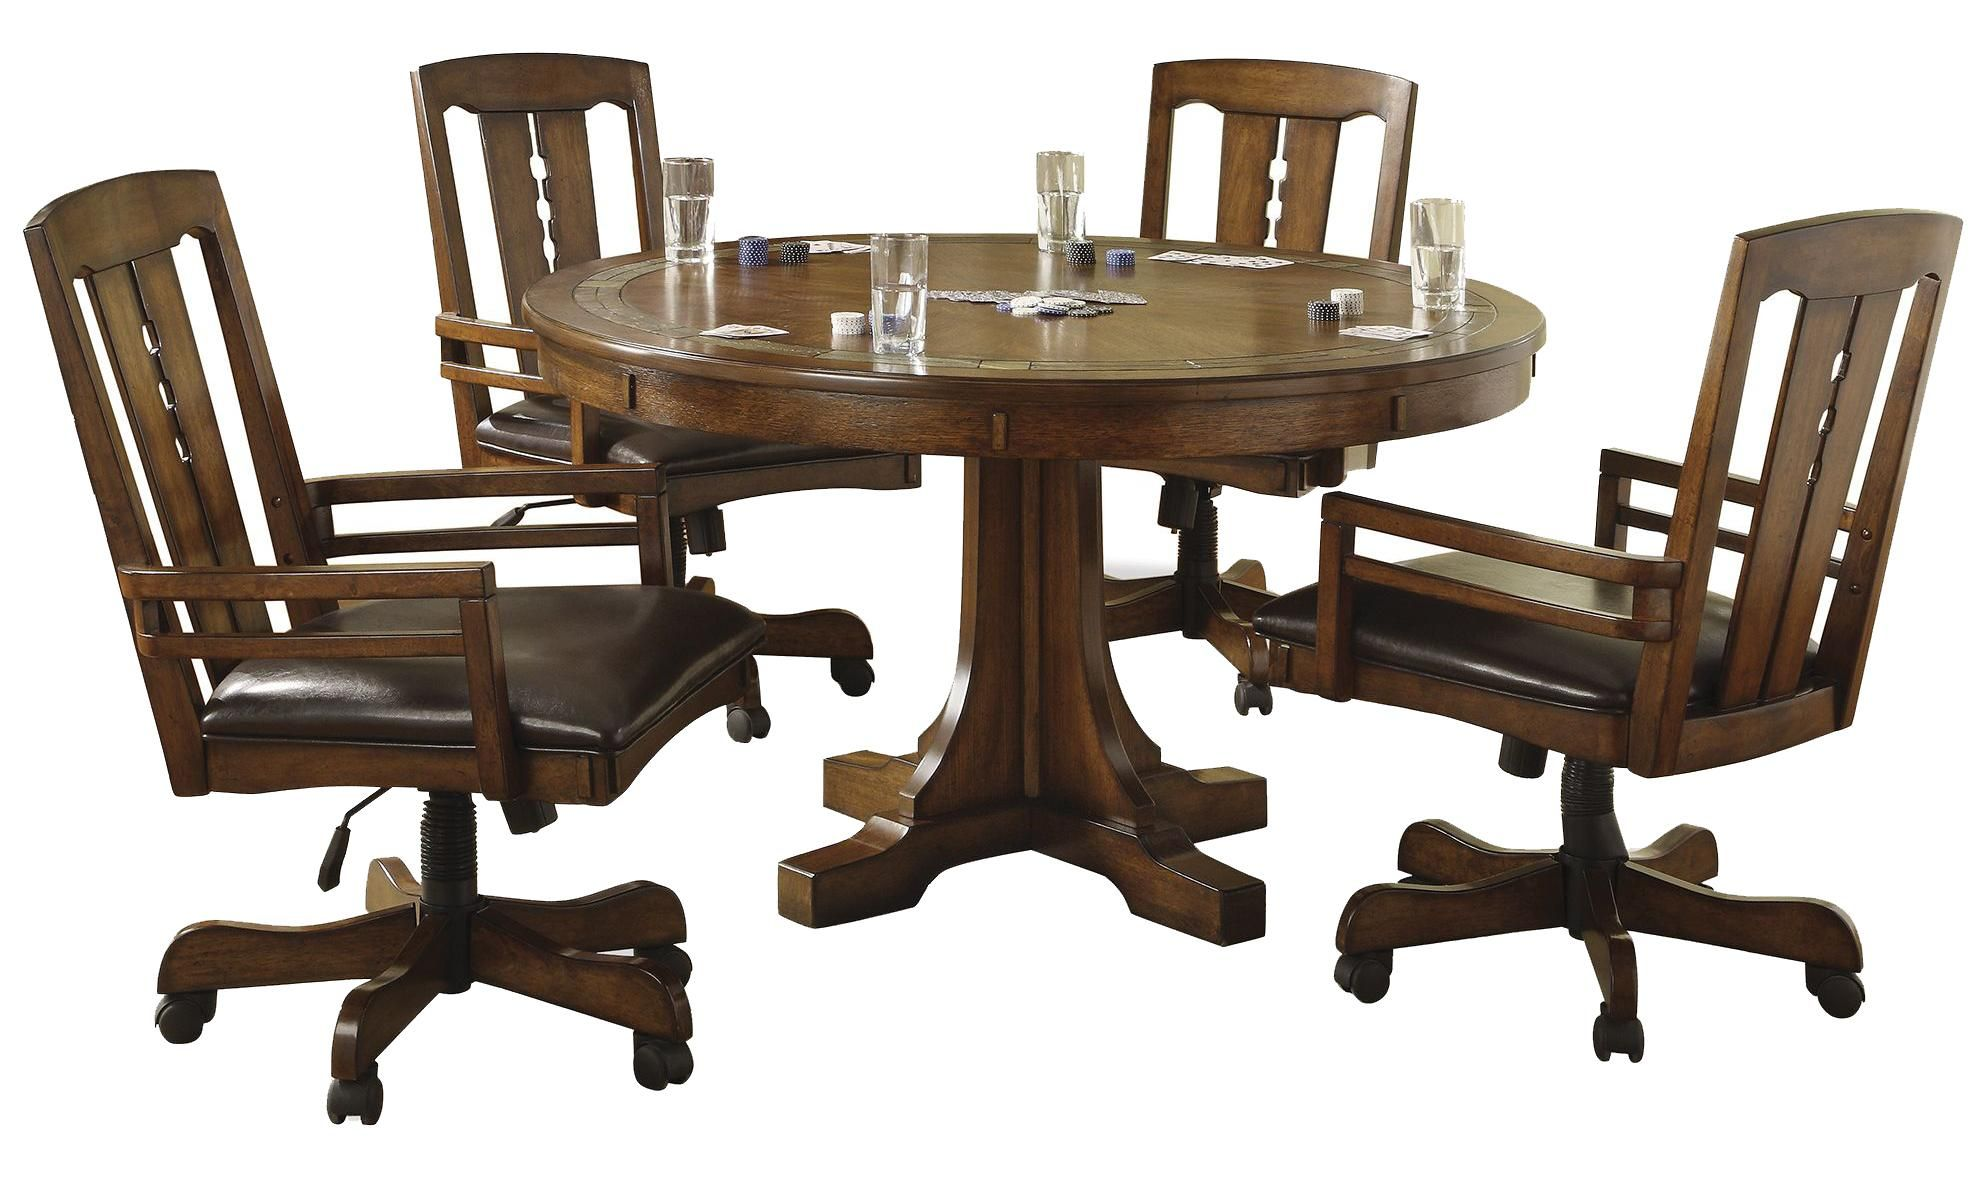 Craftsman Home 5 Piece Table